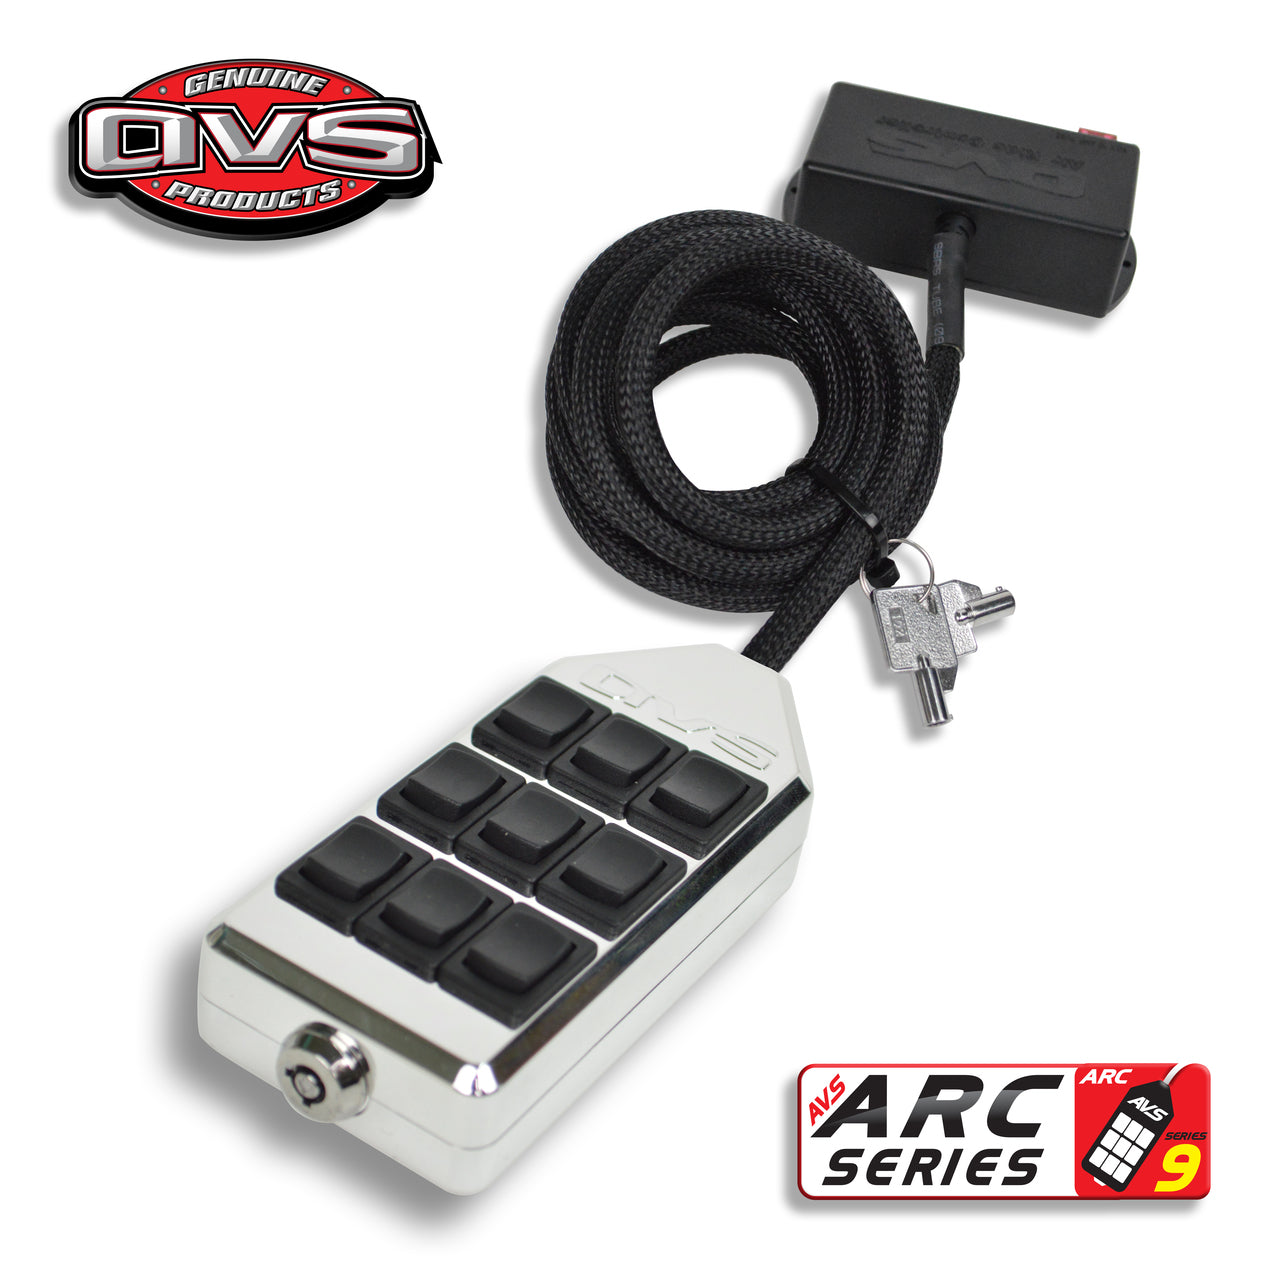 AVS 9 Rocker Switch Box Billet Chrome